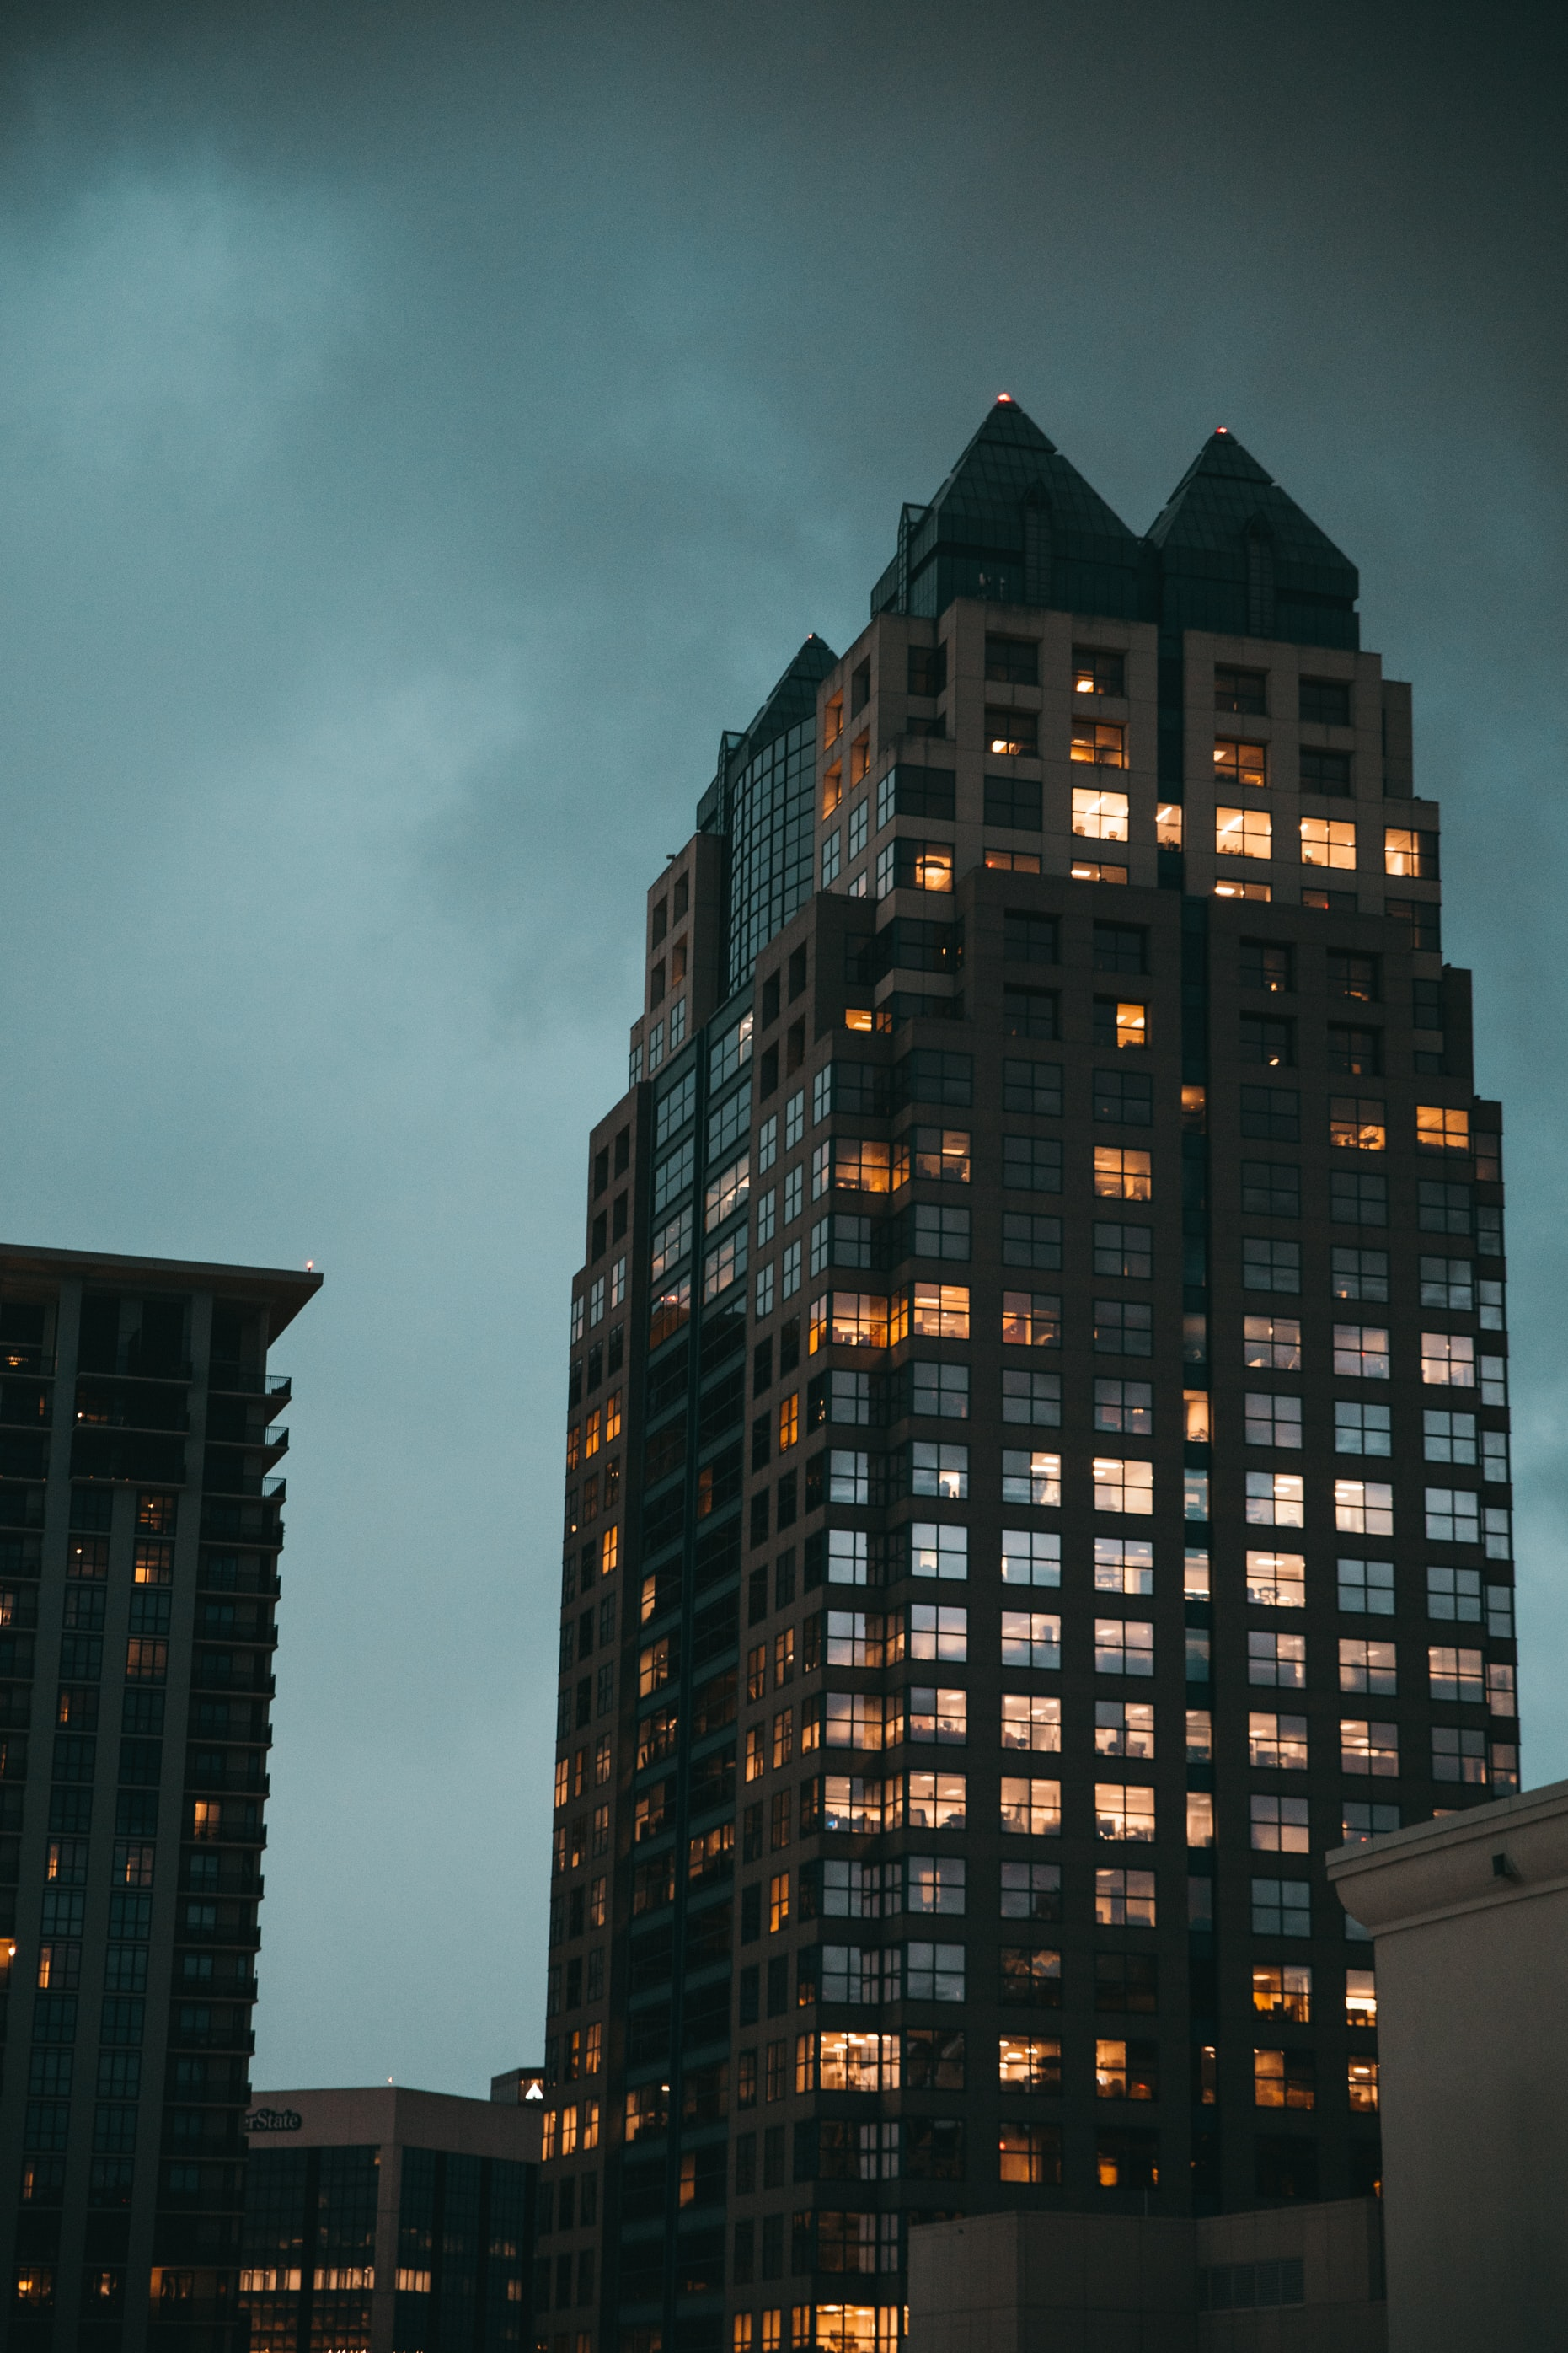 black glass-panel building under dark clouds